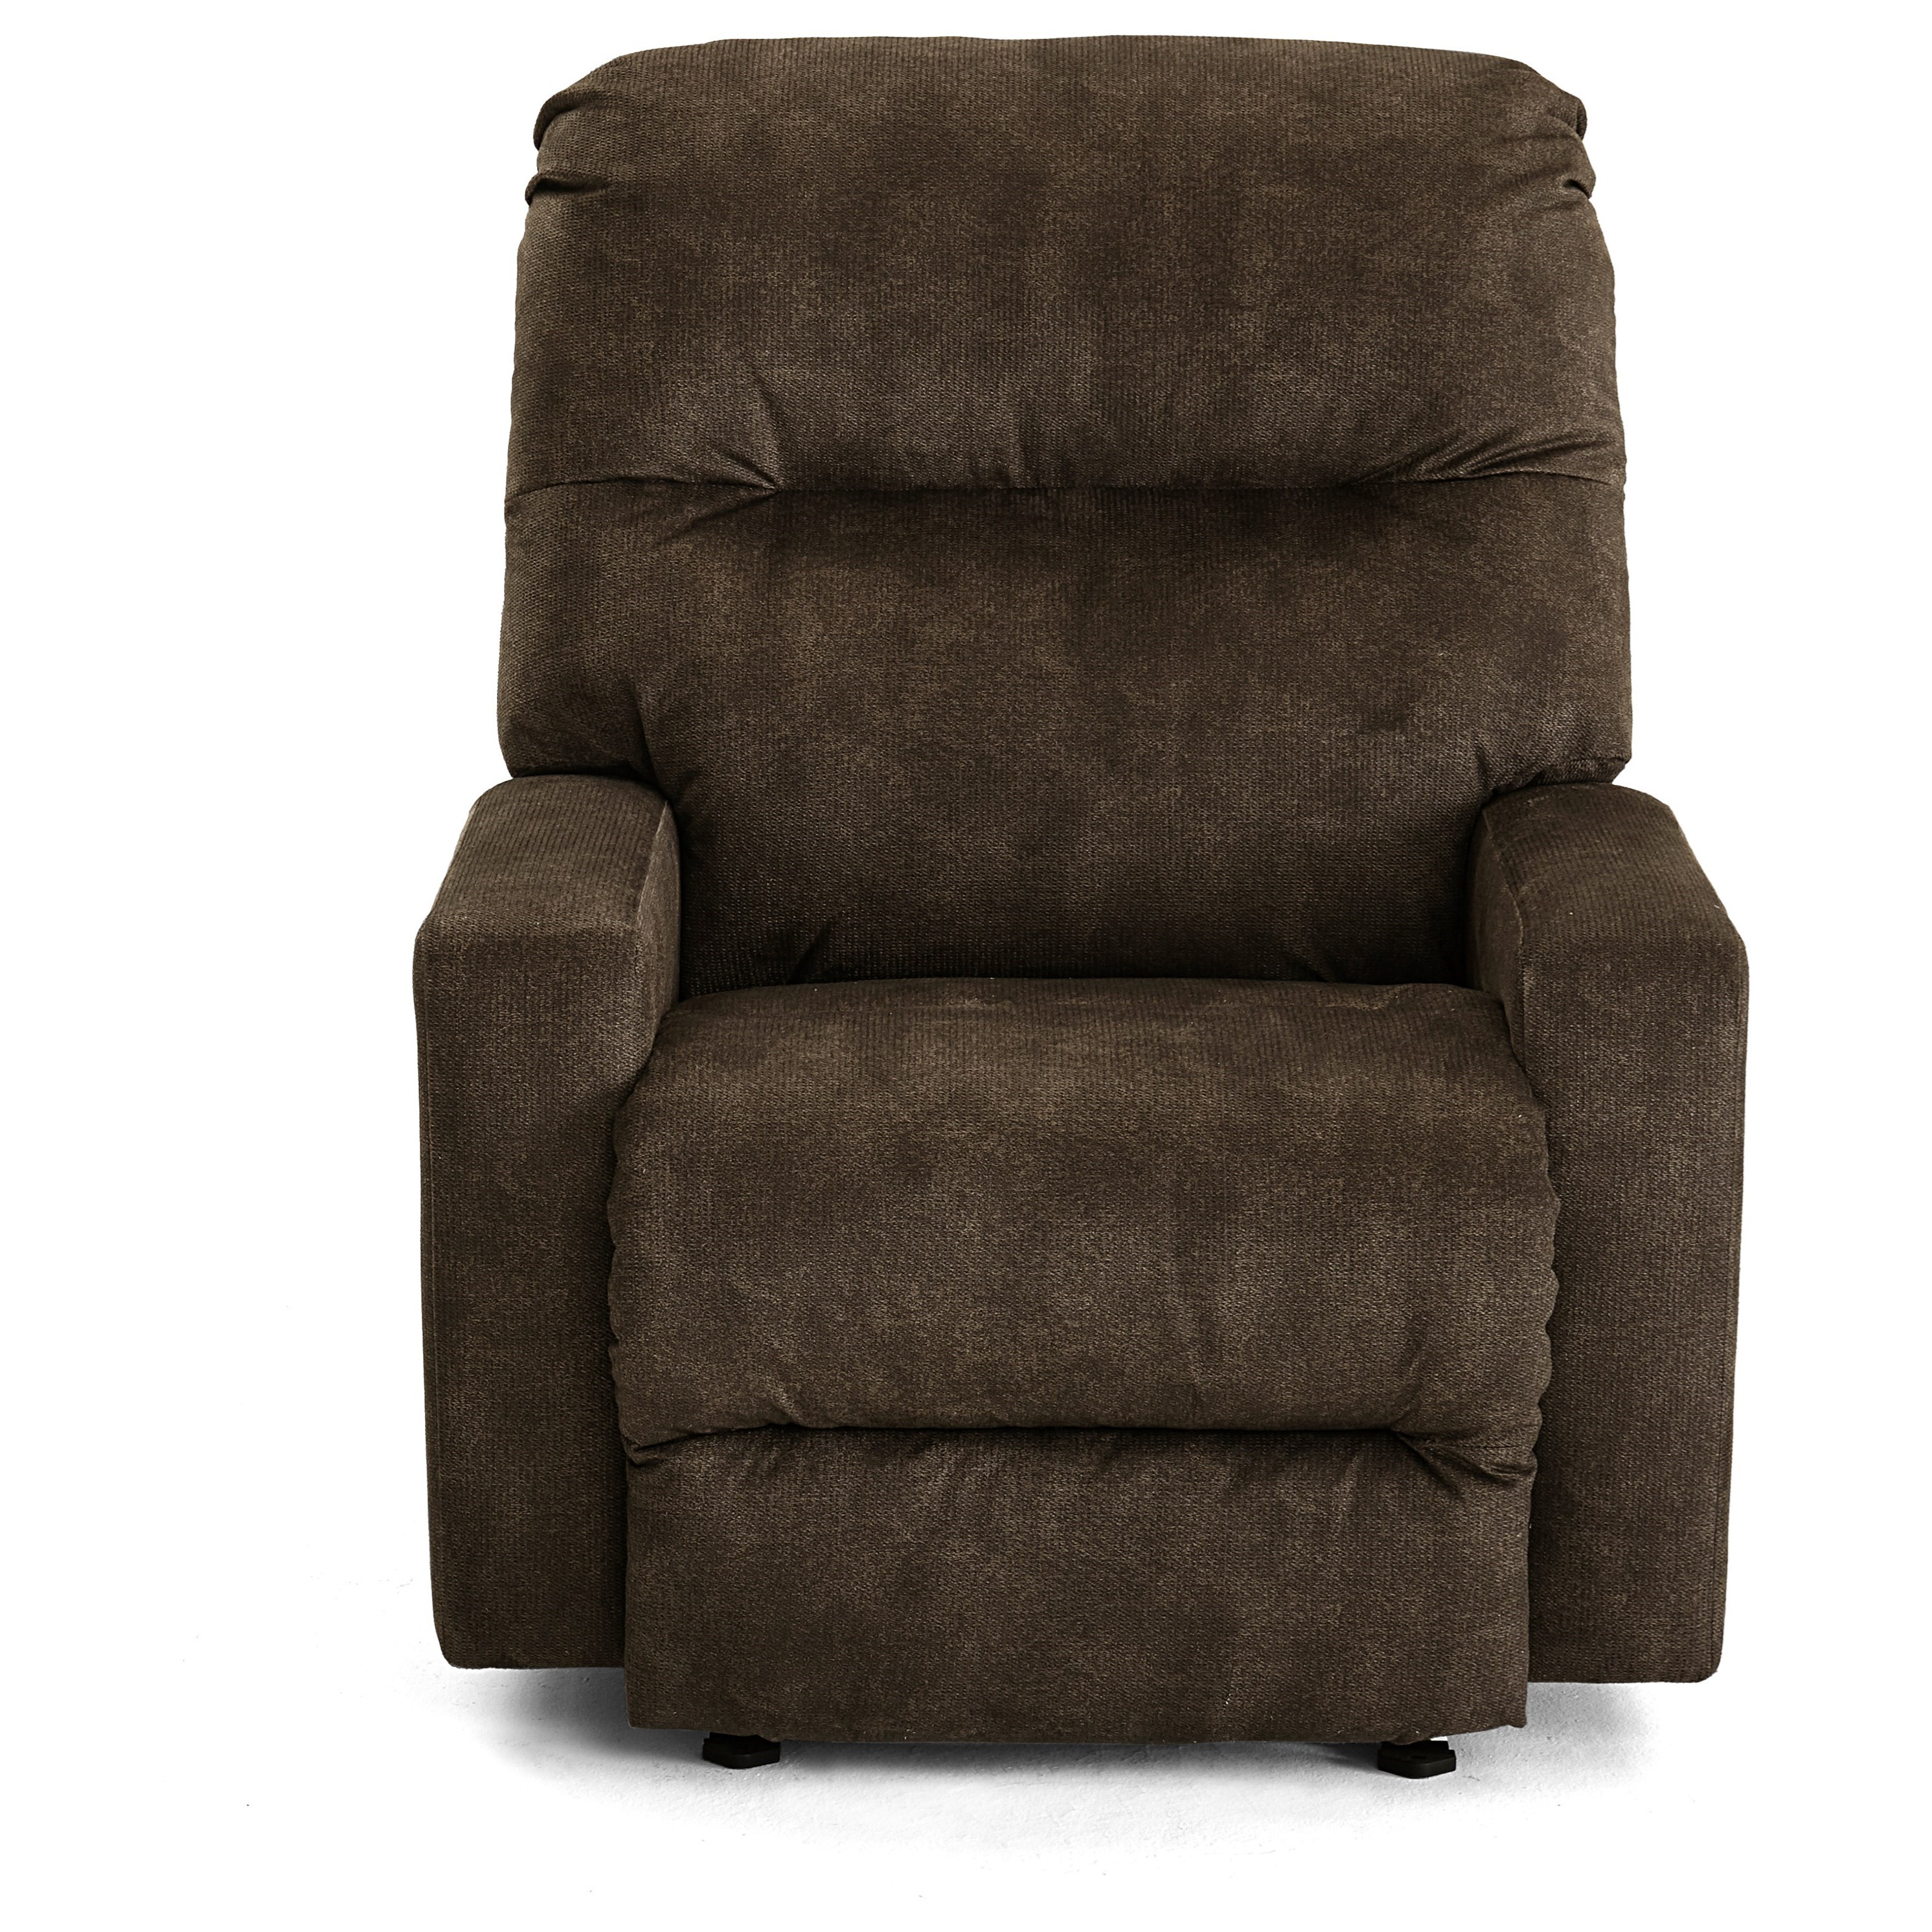 Kenley Power Rocker Recliner by Best Home Furnishings at Lapeer Furniture & Mattress Center